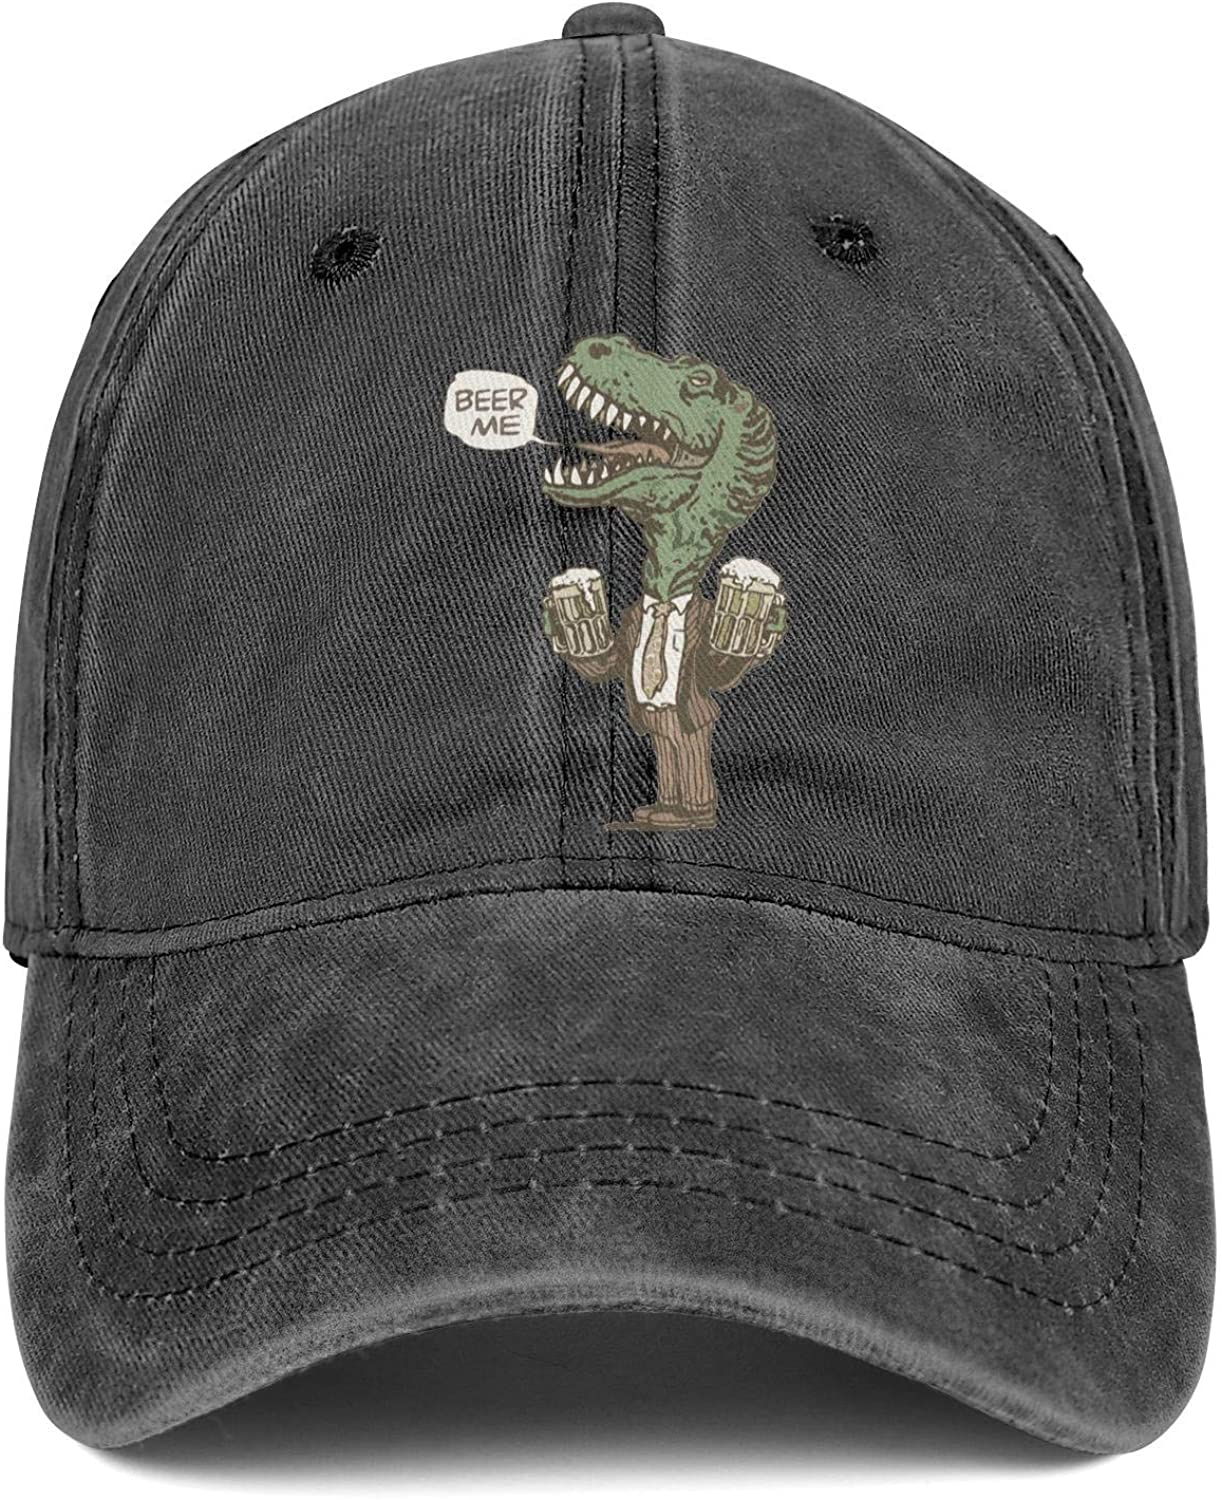 Beer Me T Rex Unisex Baseball Cap Quick Dry Running Caps Adjustable Trucker Caps Dad-Hat